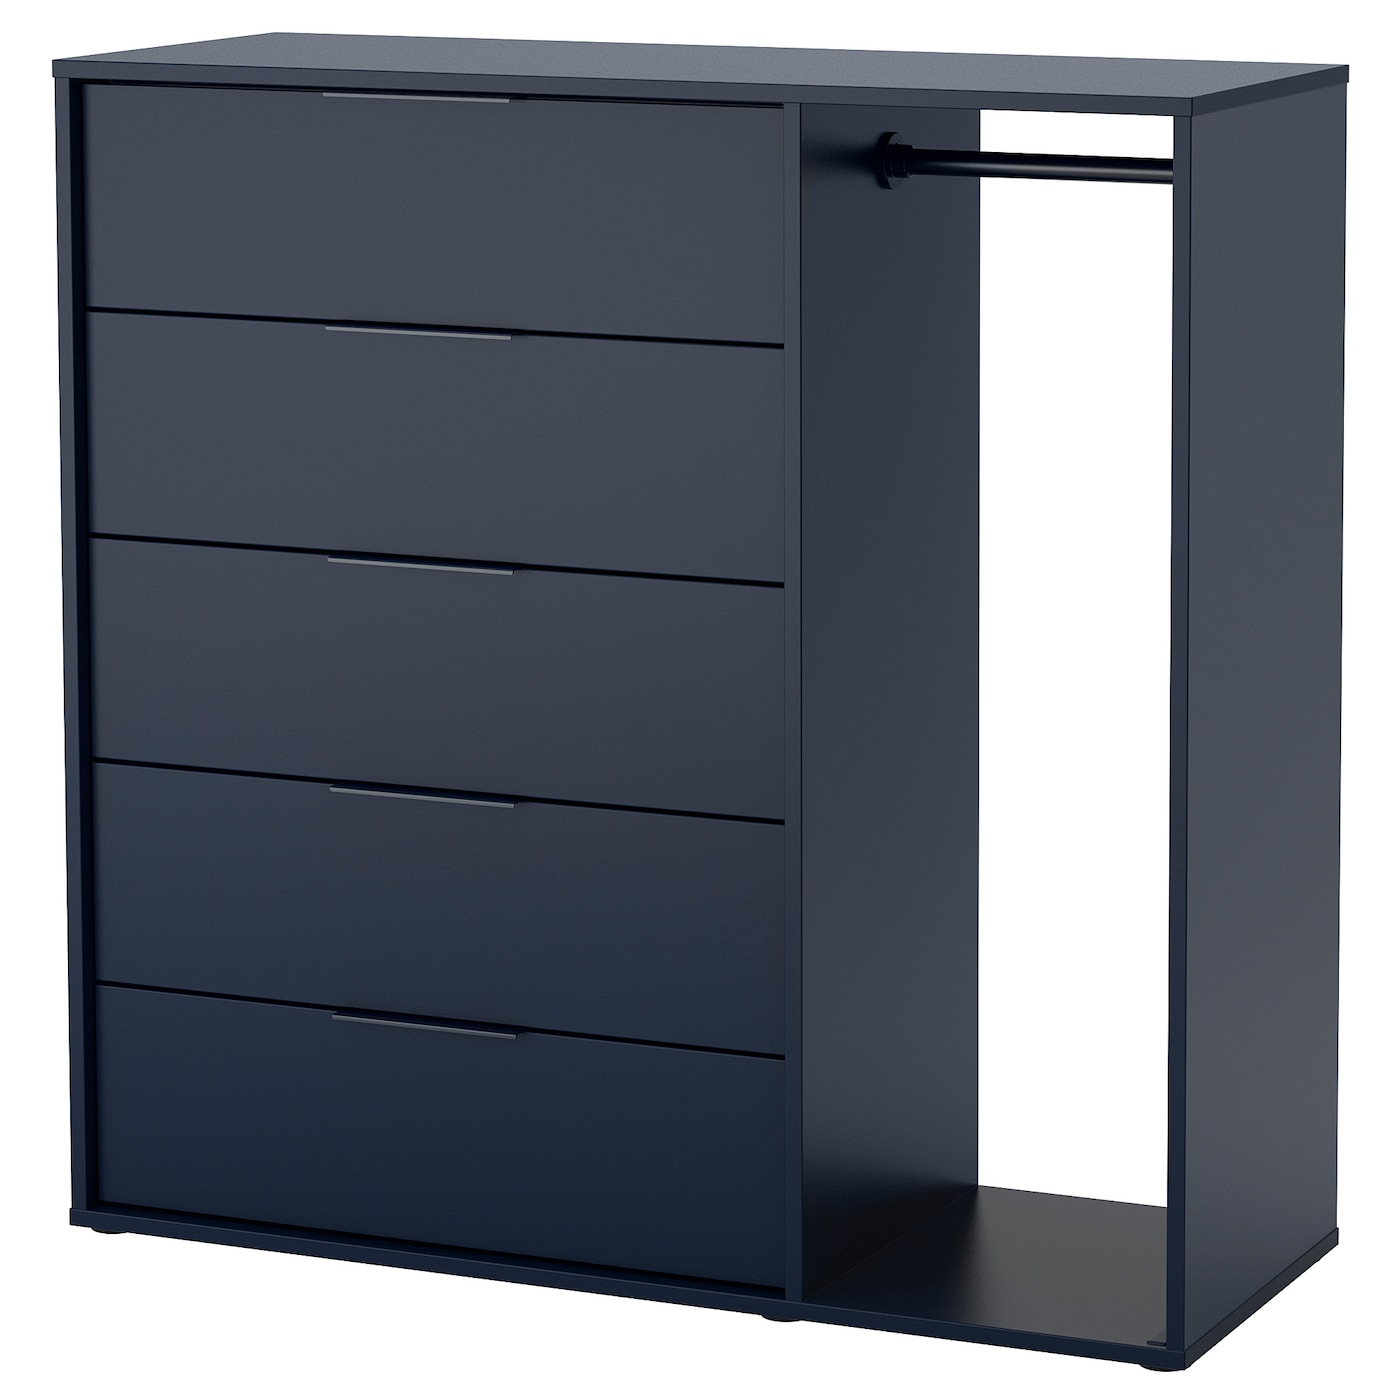 IKEA NORDMELA chest of drawers with clothes rail Smooth running drawers with pull-out stop.